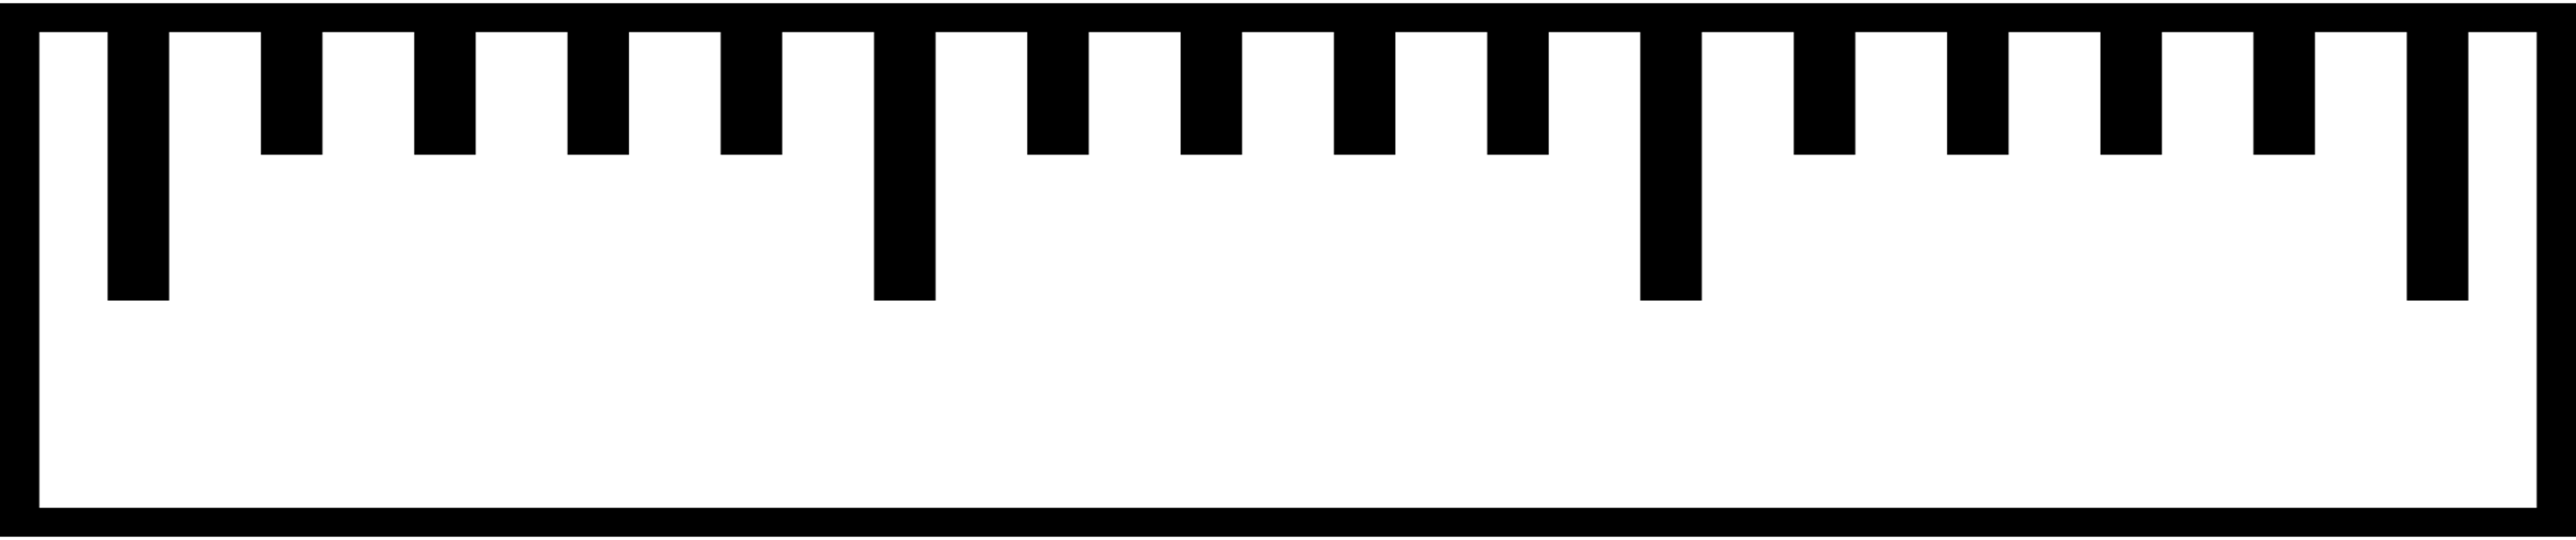 Musical Instrument,Electric Piano,Symmetry